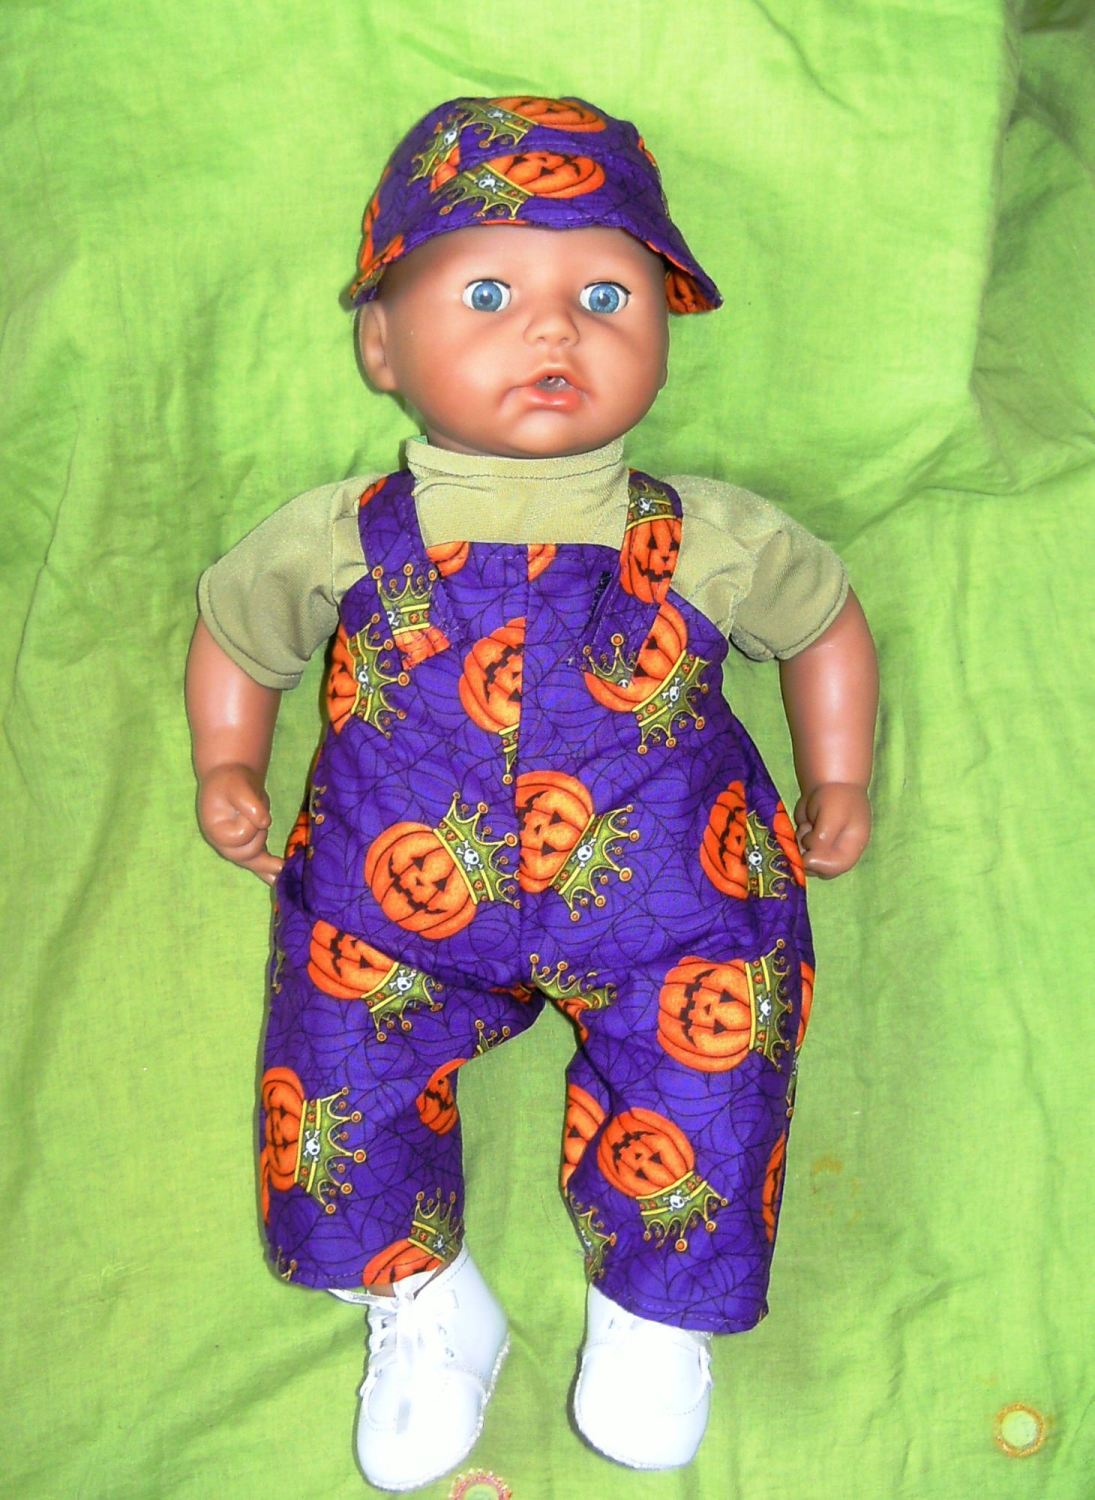 dolls Halloween dungarees outfit to fit George dolls and most 18 inch baby